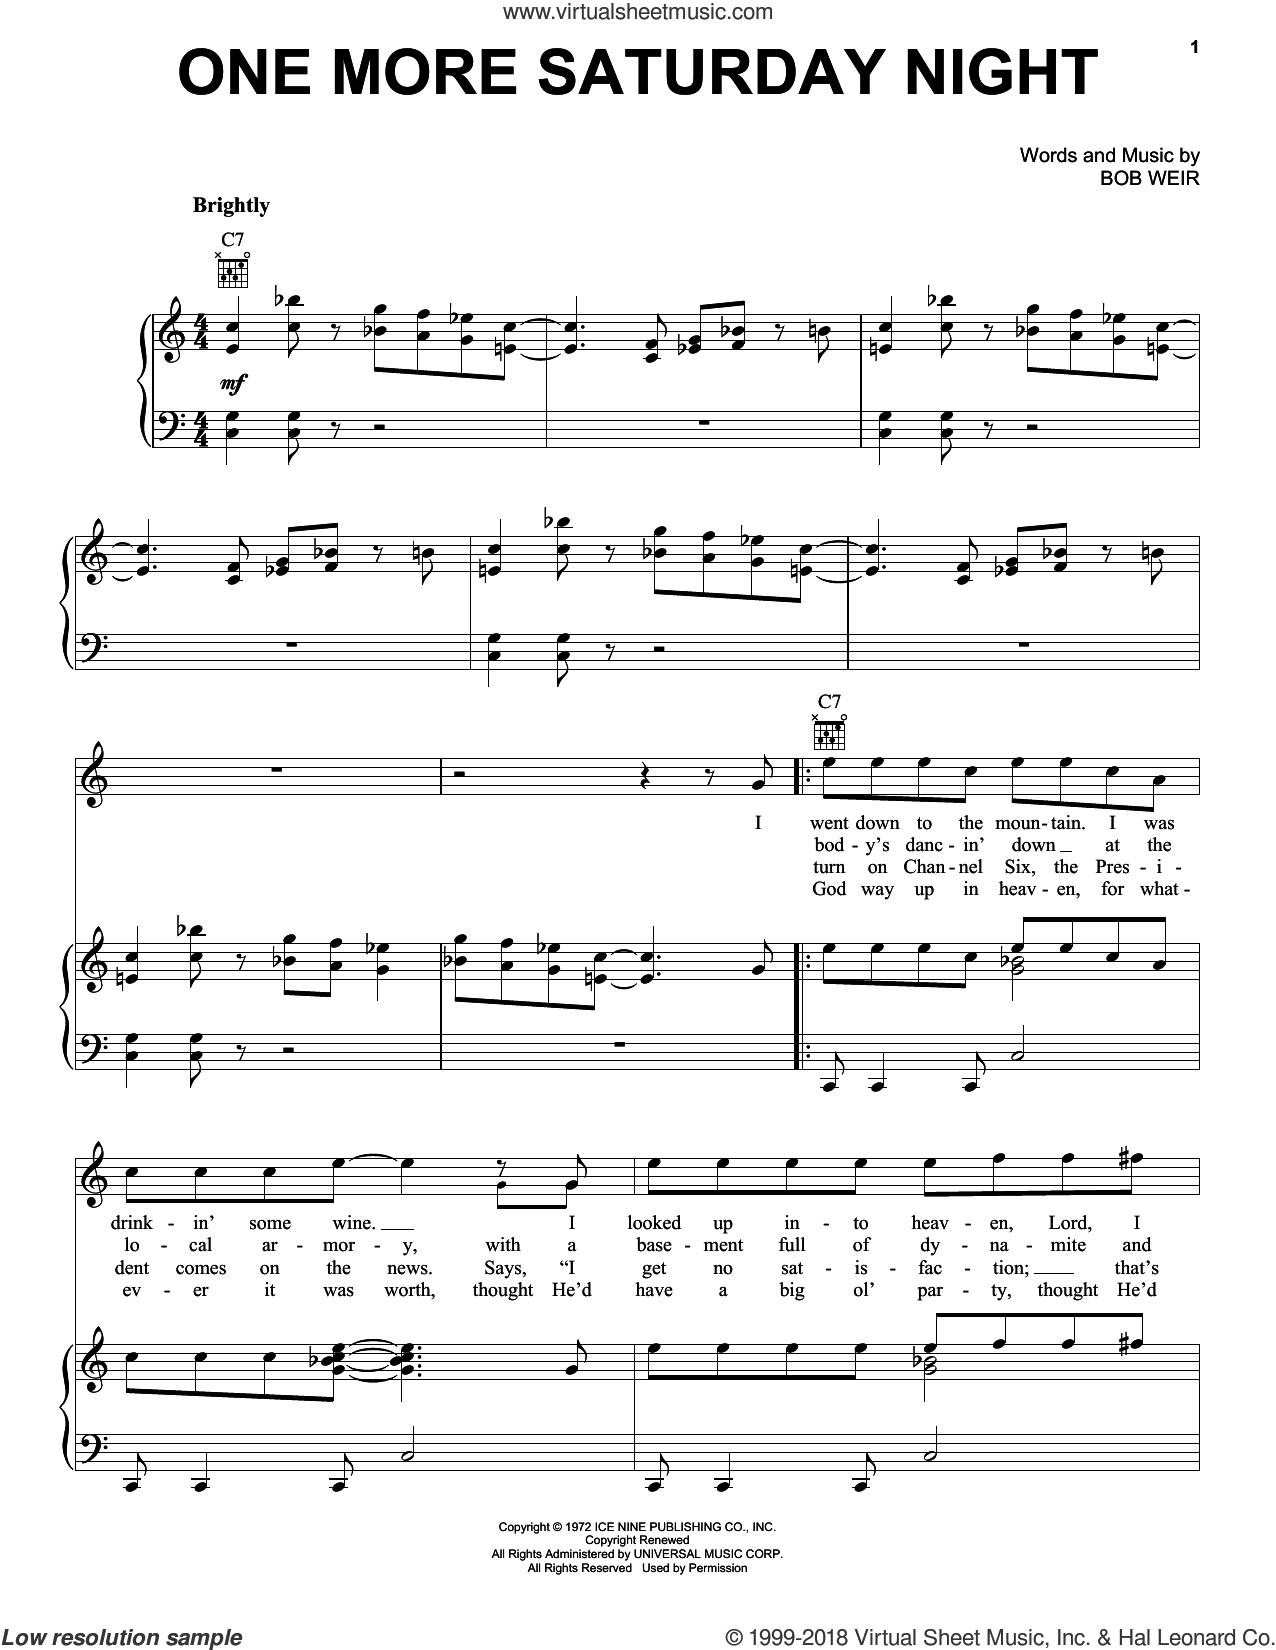 One More Saturday Night sheet music for voice, piano or guitar by Grateful Dead and Bob Weir, intermediate skill level